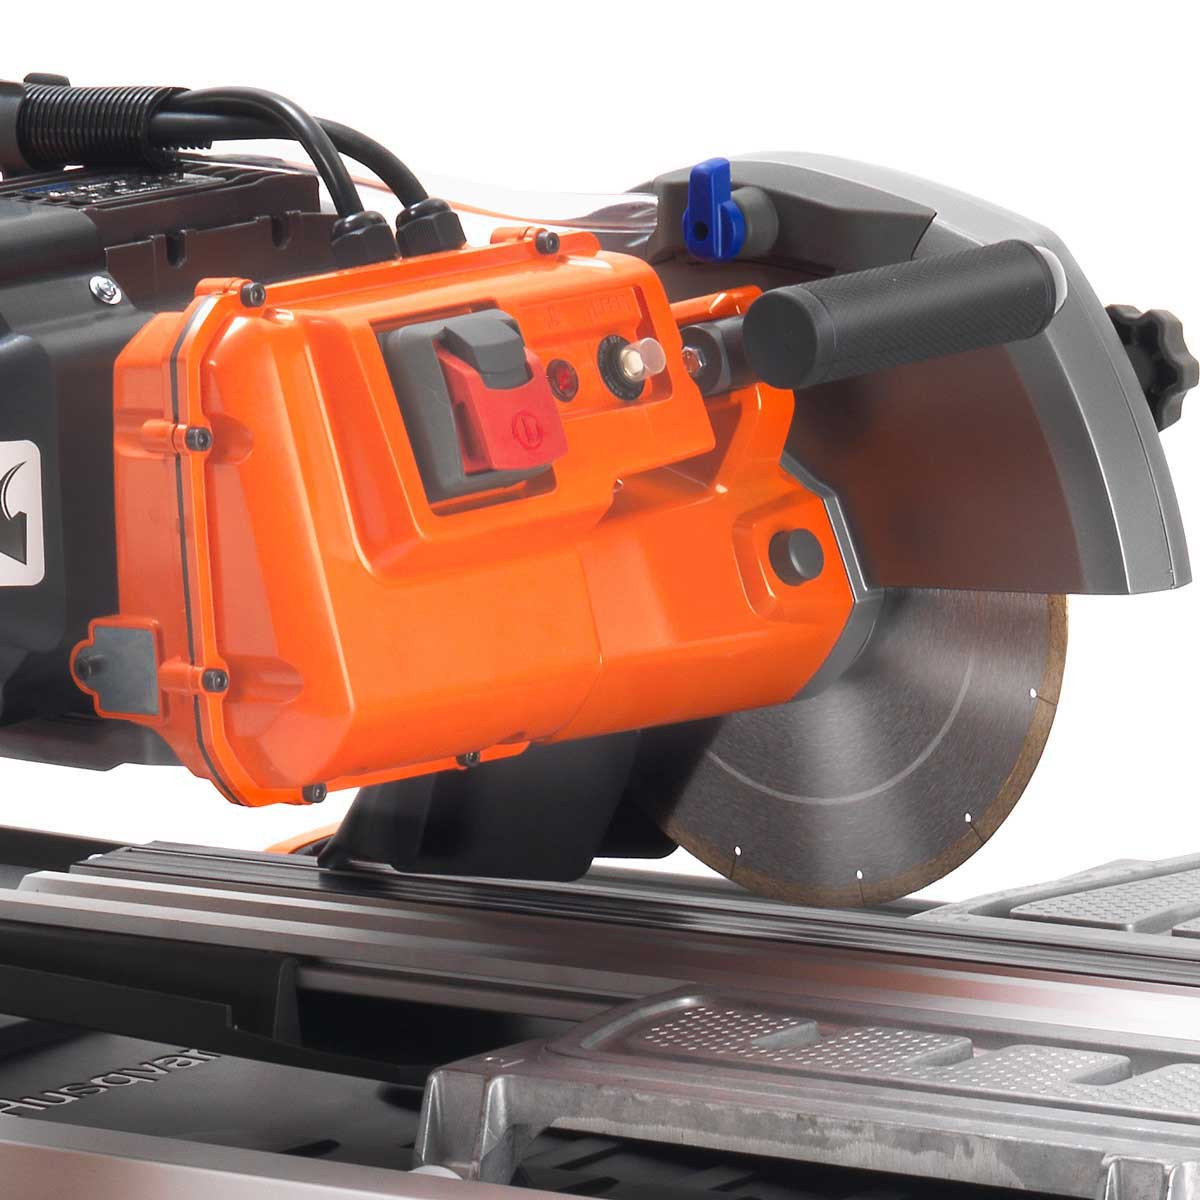 husqvarna ts90 tile saw close up